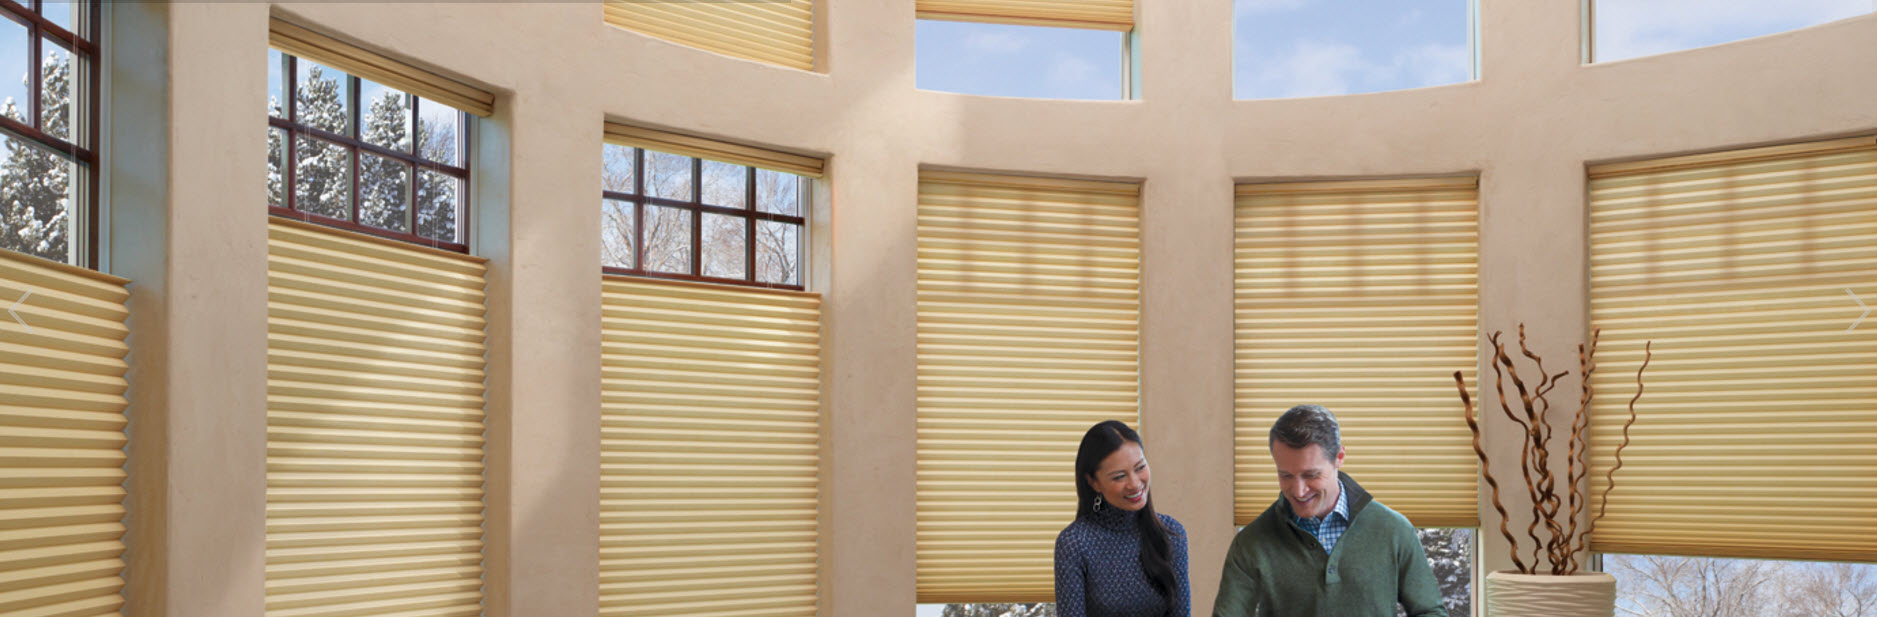 DUETTE® Honeycomb Shades U2013 Glenview Illinois